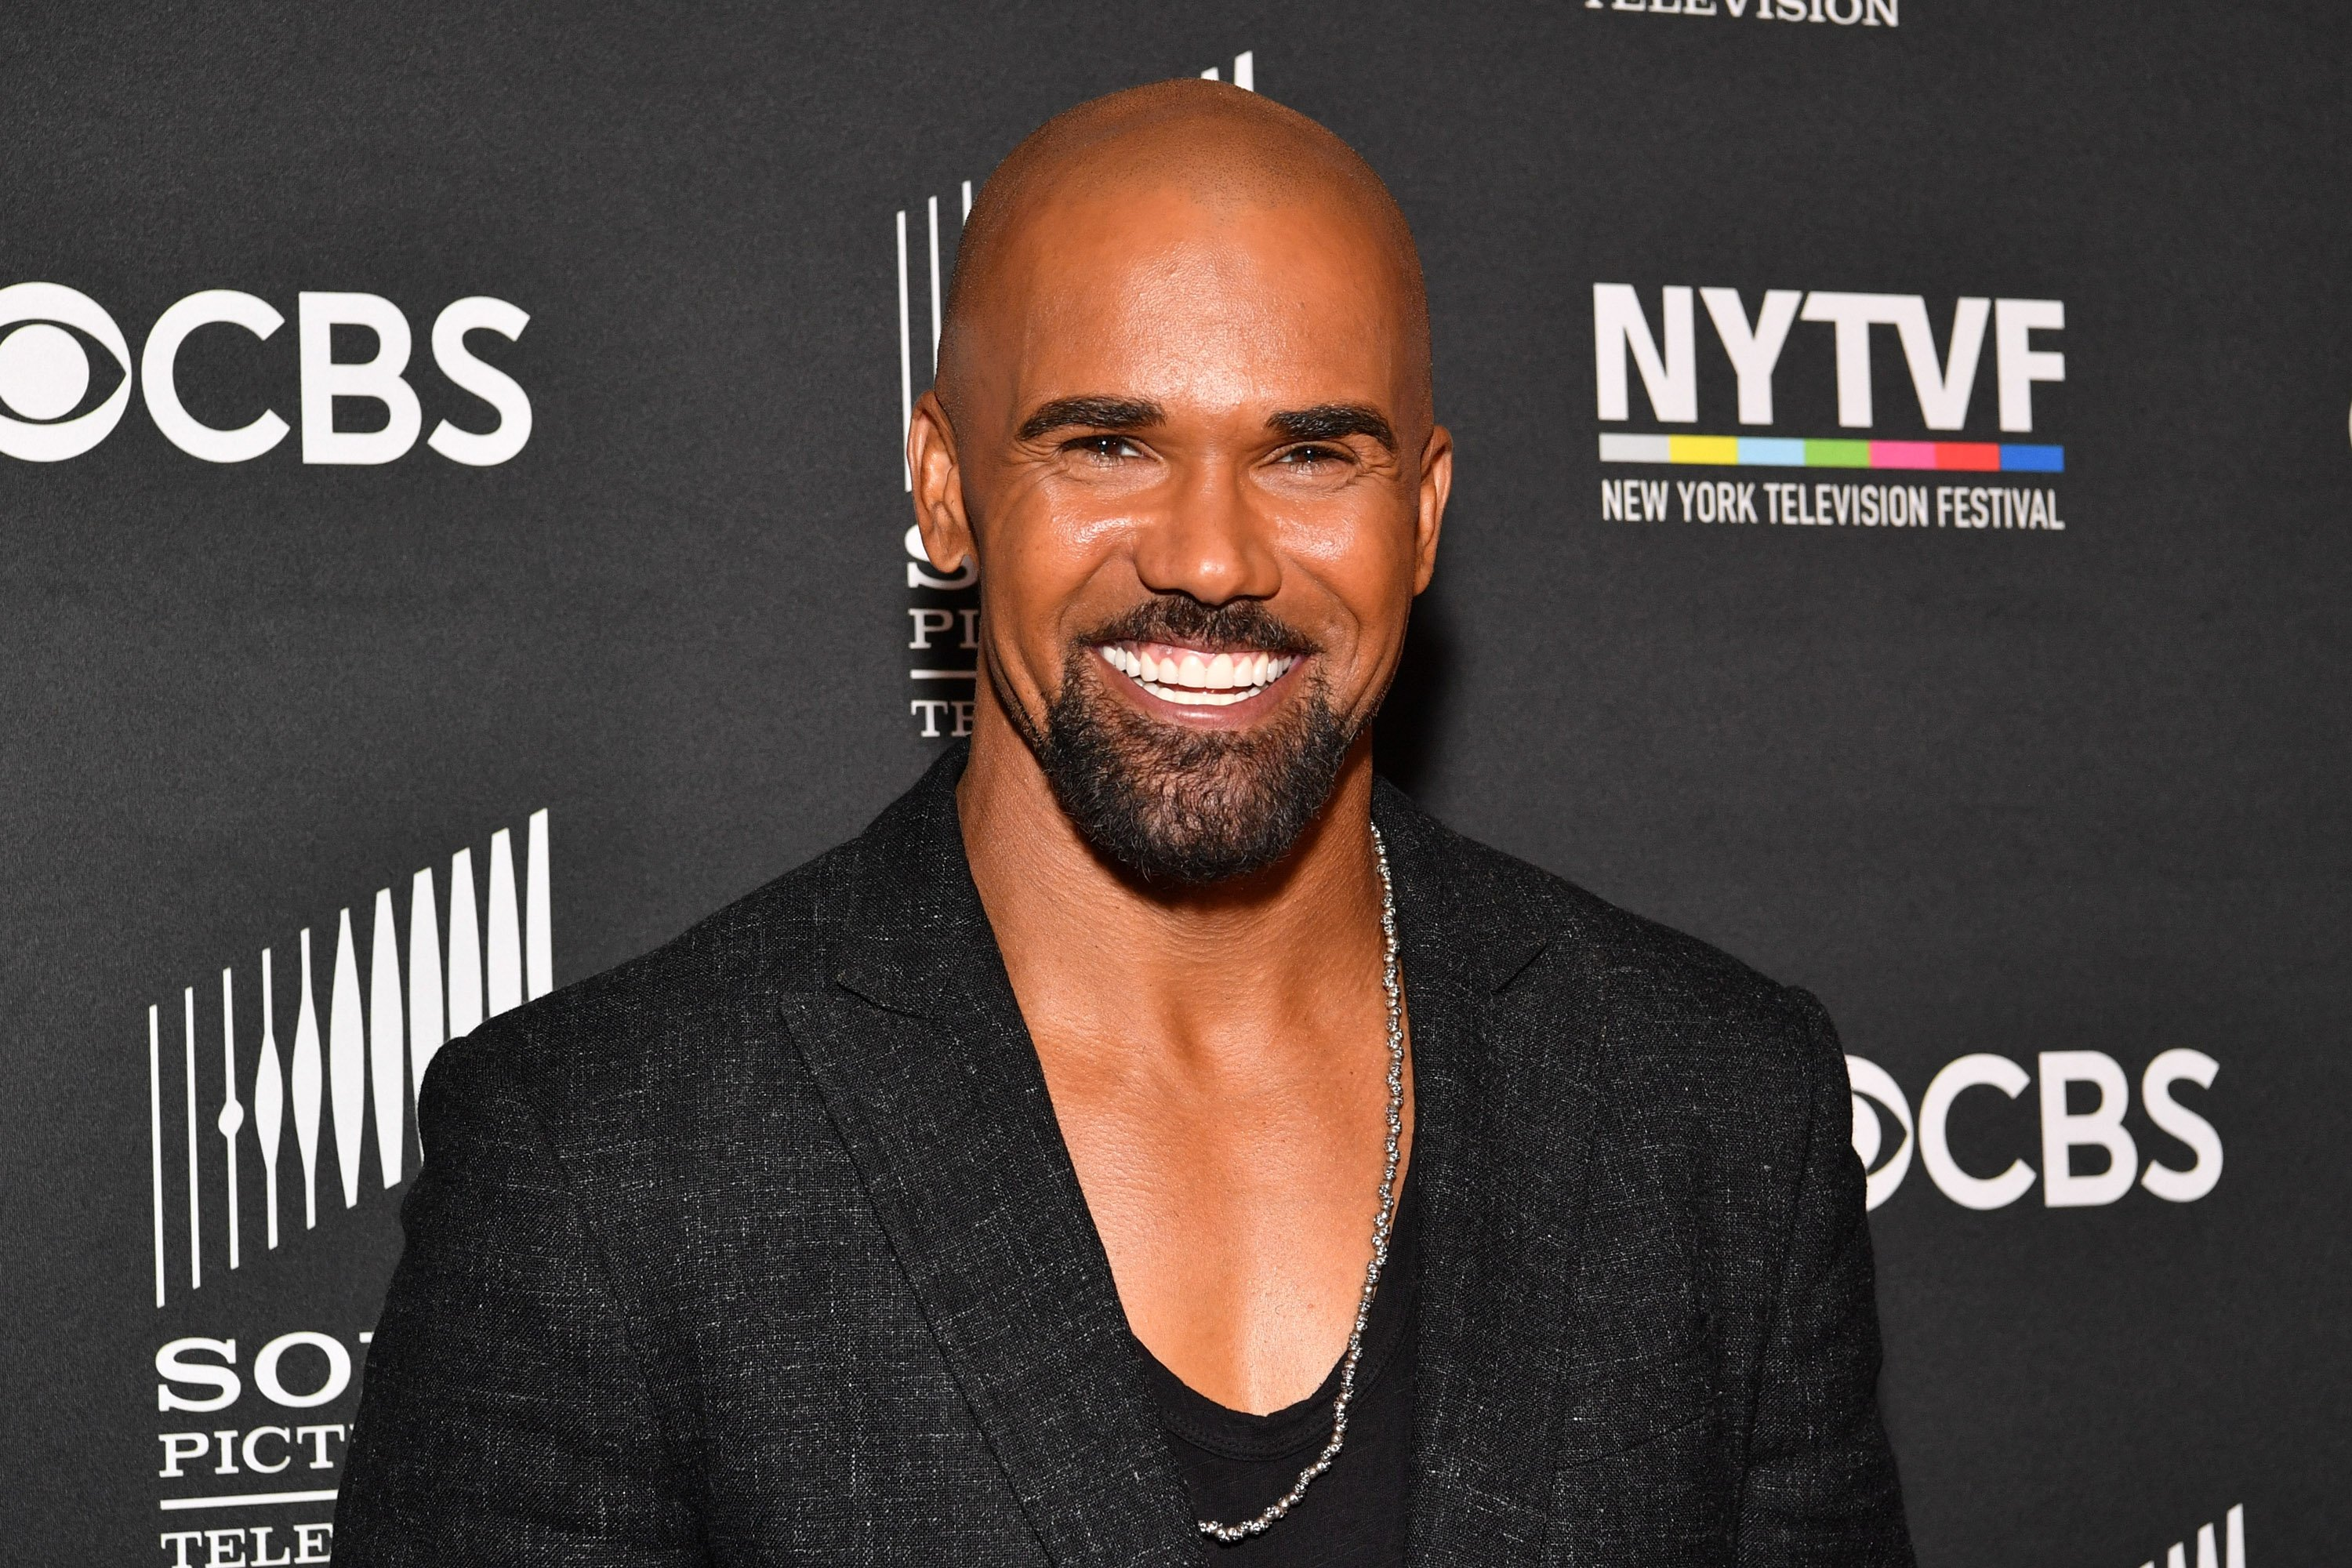 Shemar Moore at the New York Television Festival   Photo: Getty Images